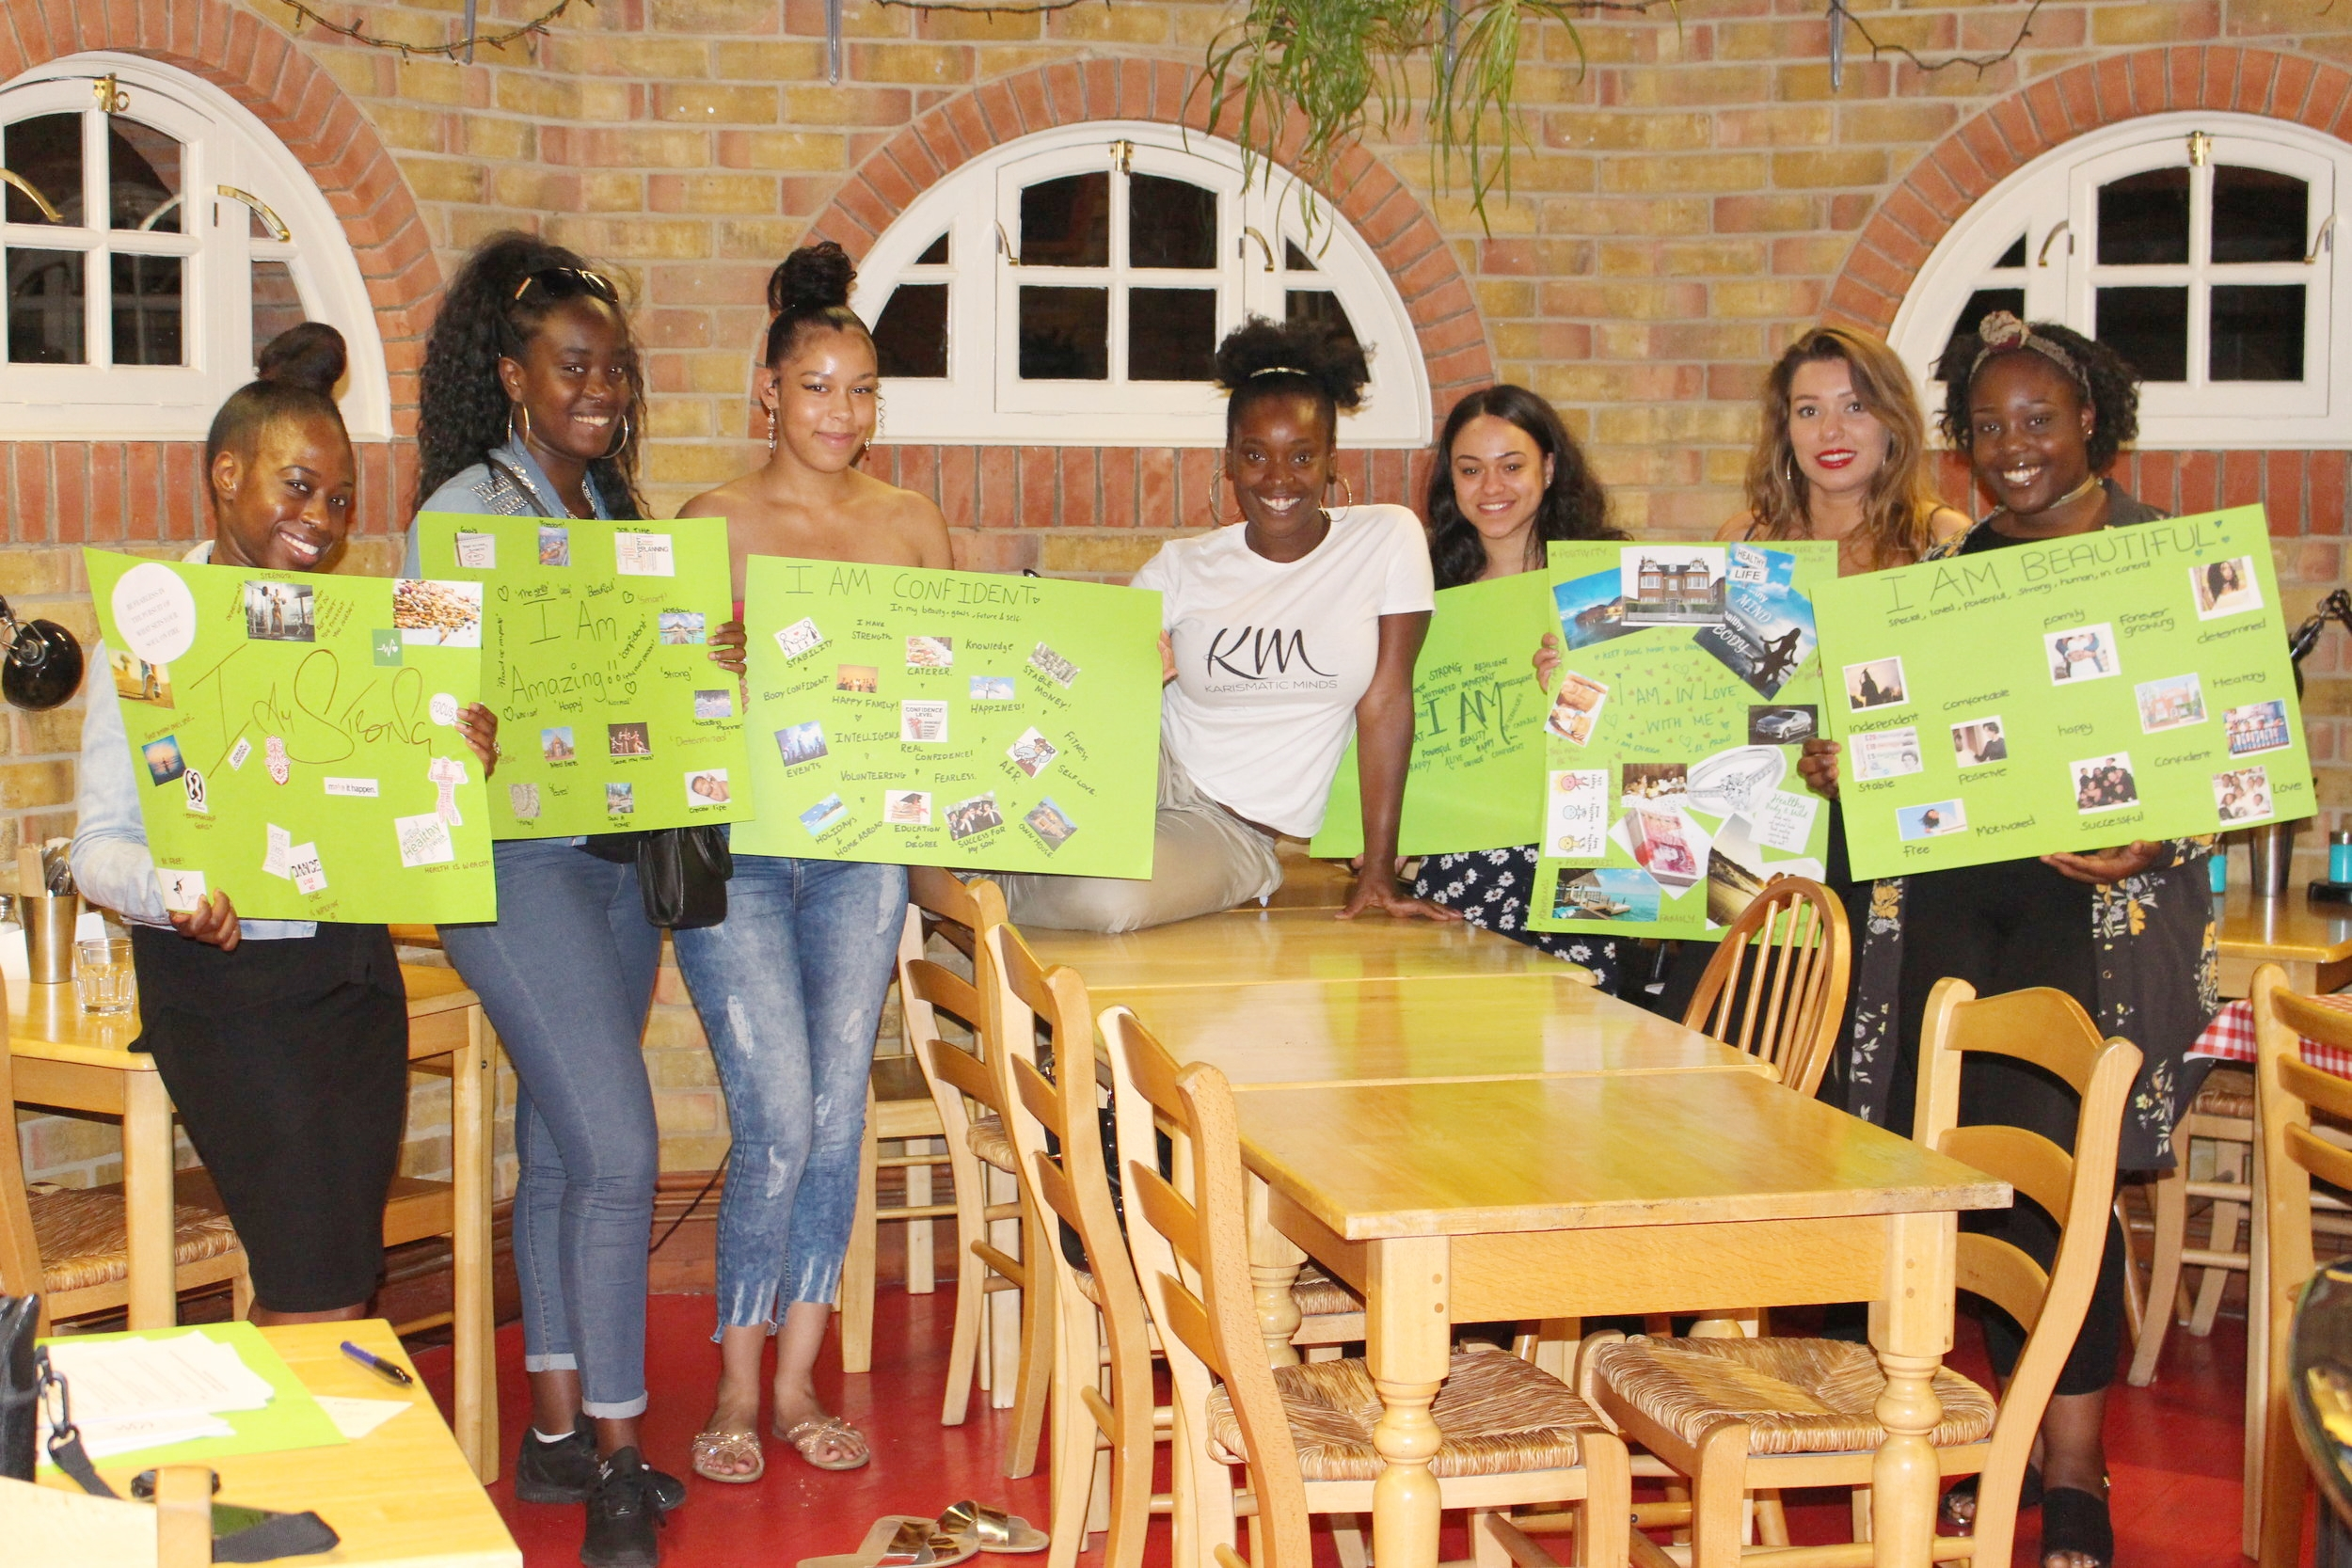 Vision Board Party by June 2017 @ Cafe Van Gogh